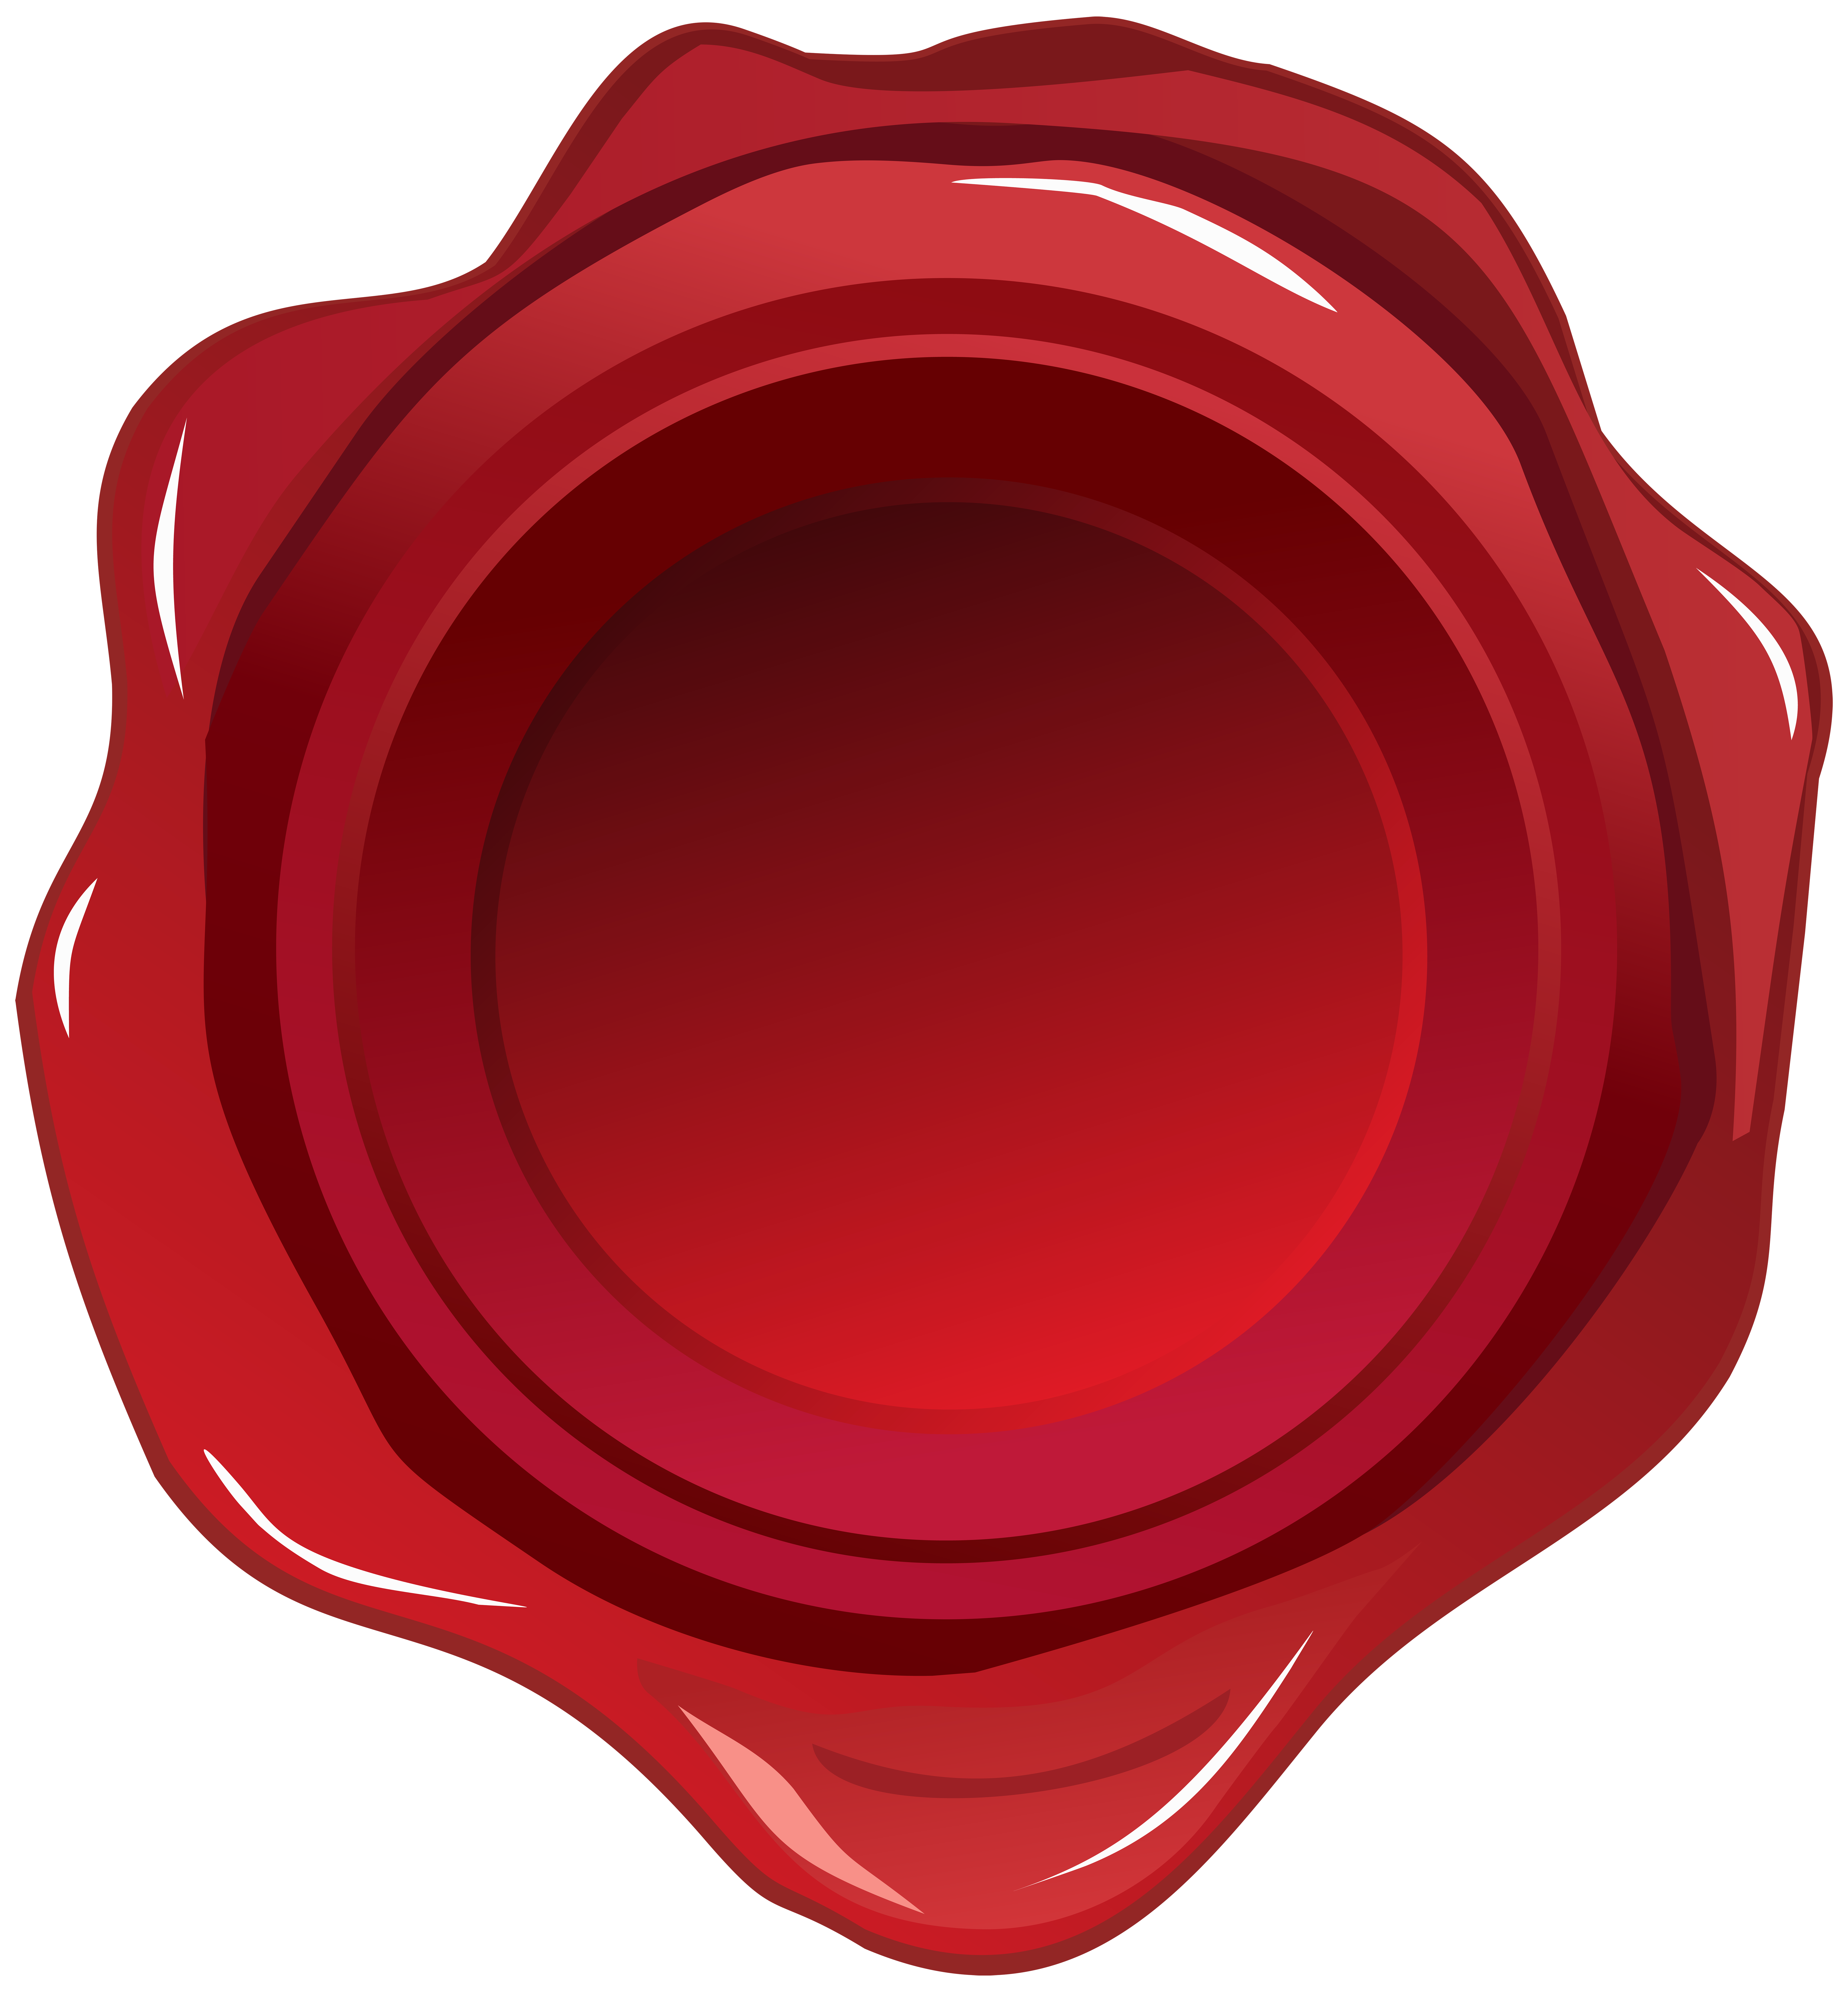 Red Wax Seal PNG Clip Art Image.